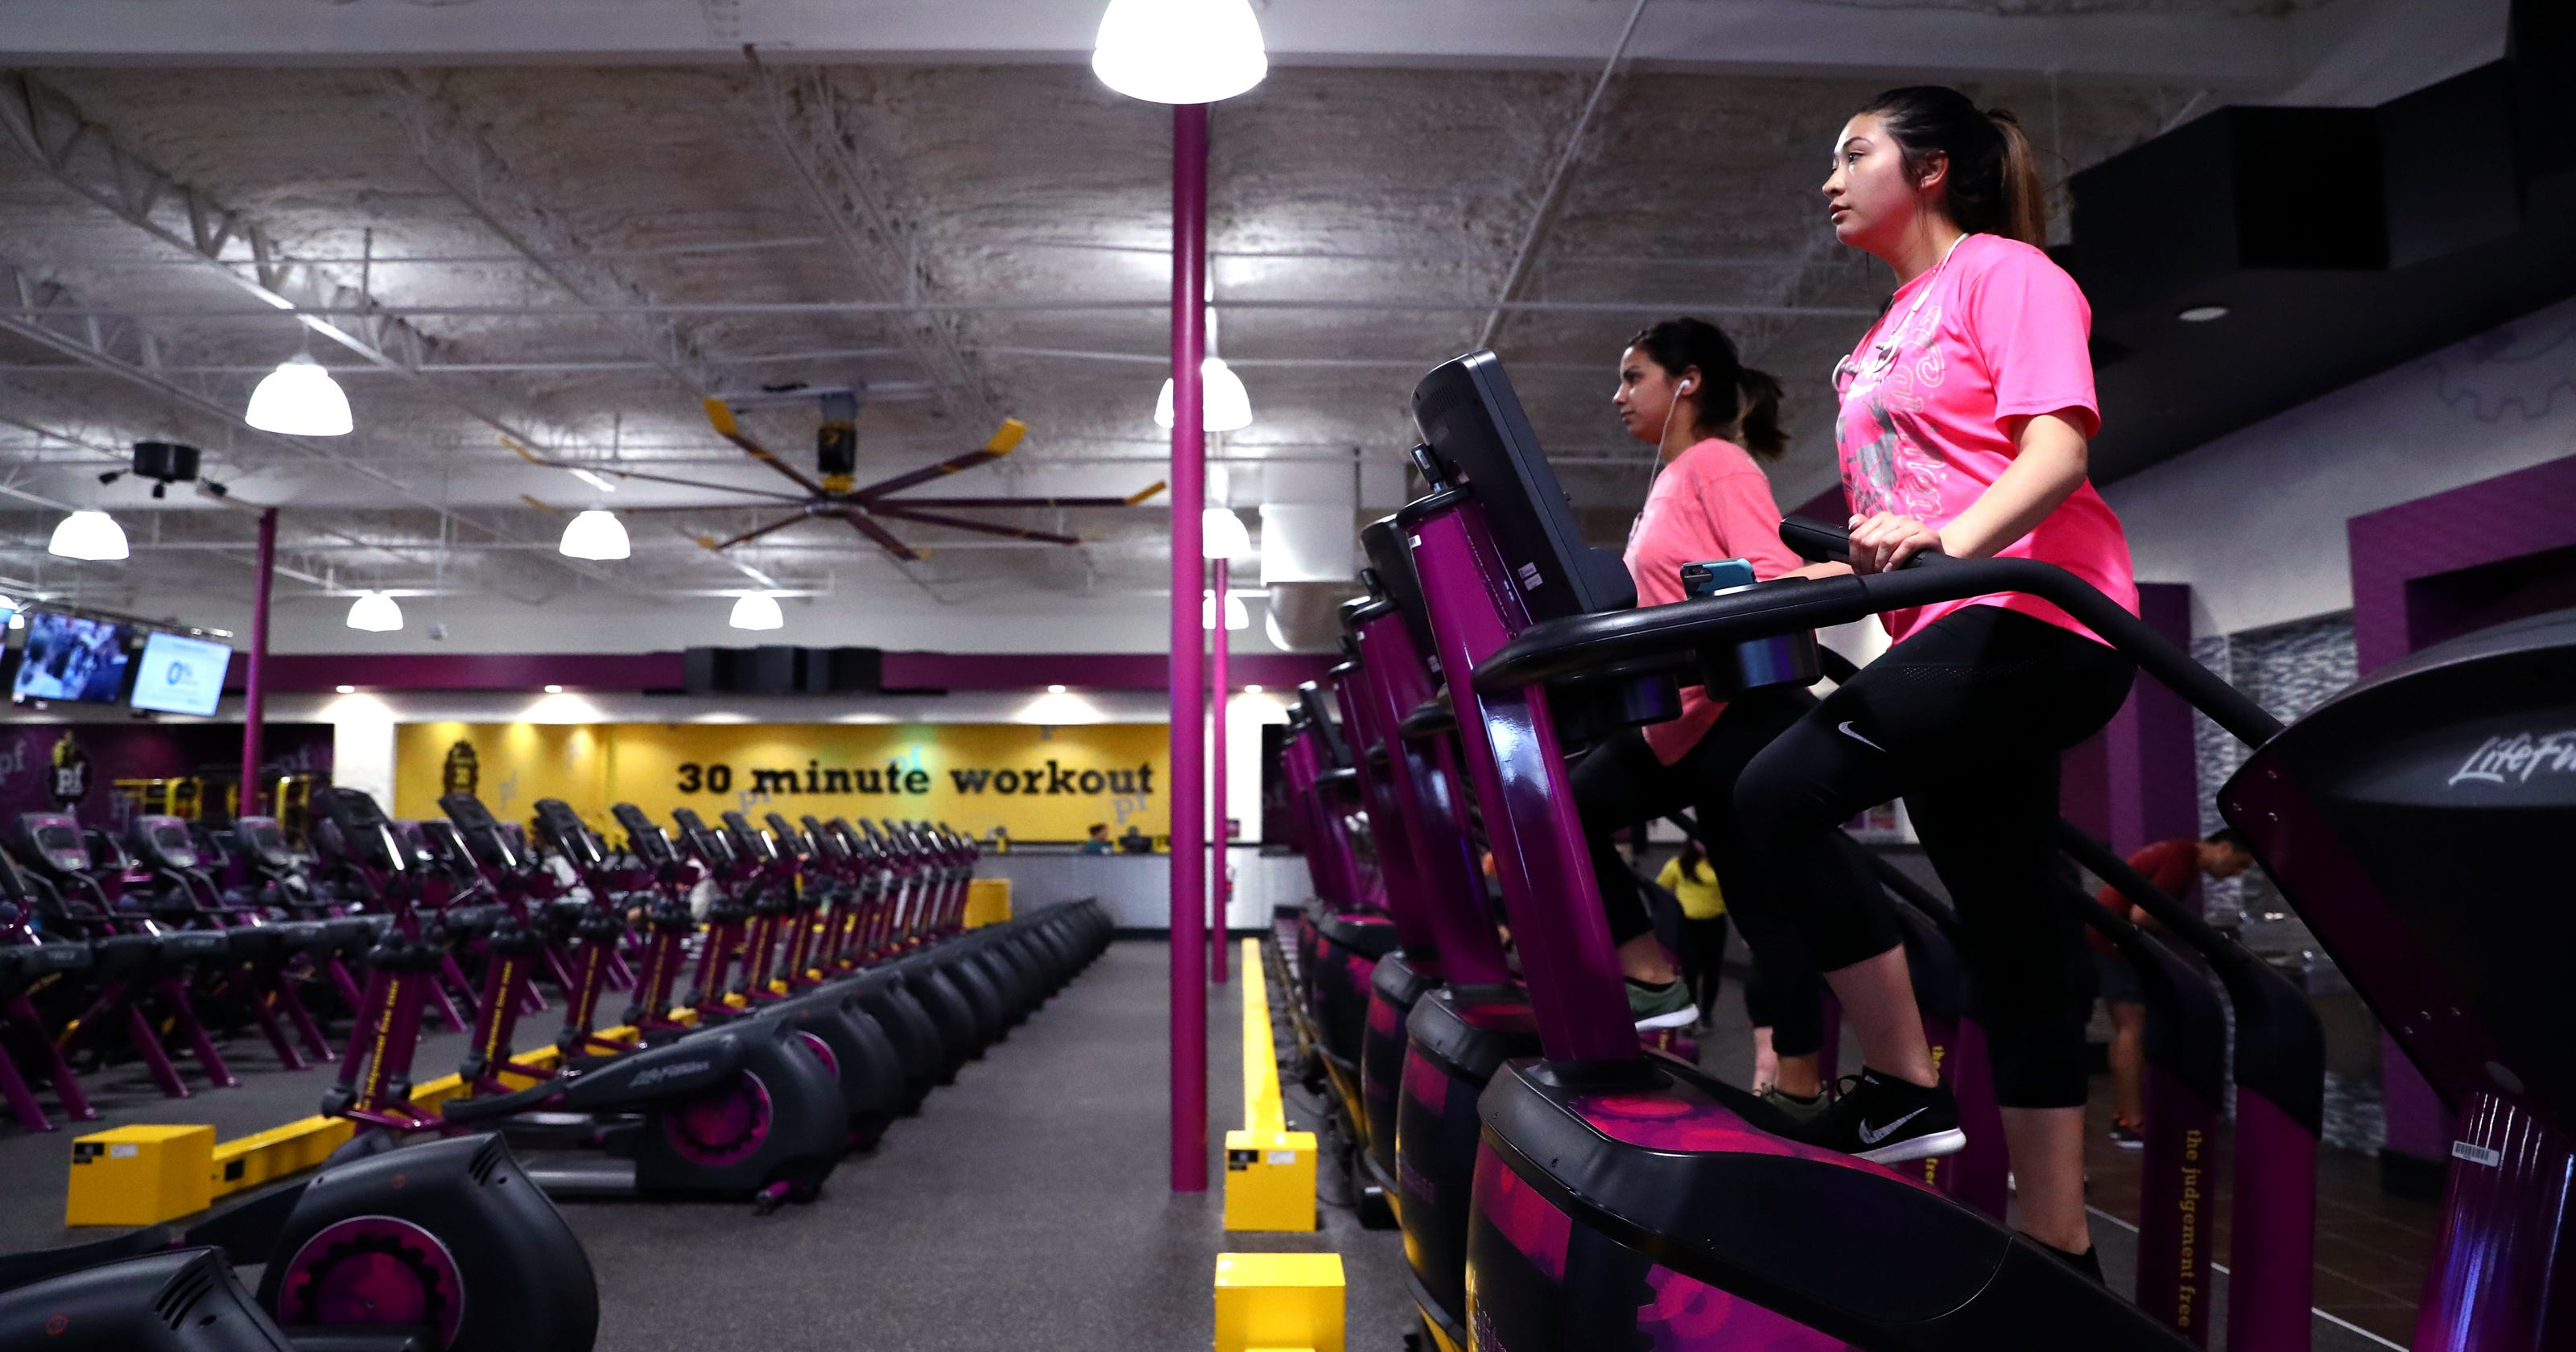 New Planet Fitness Gyms Open In Nw Corpus Christi And Portland Tx